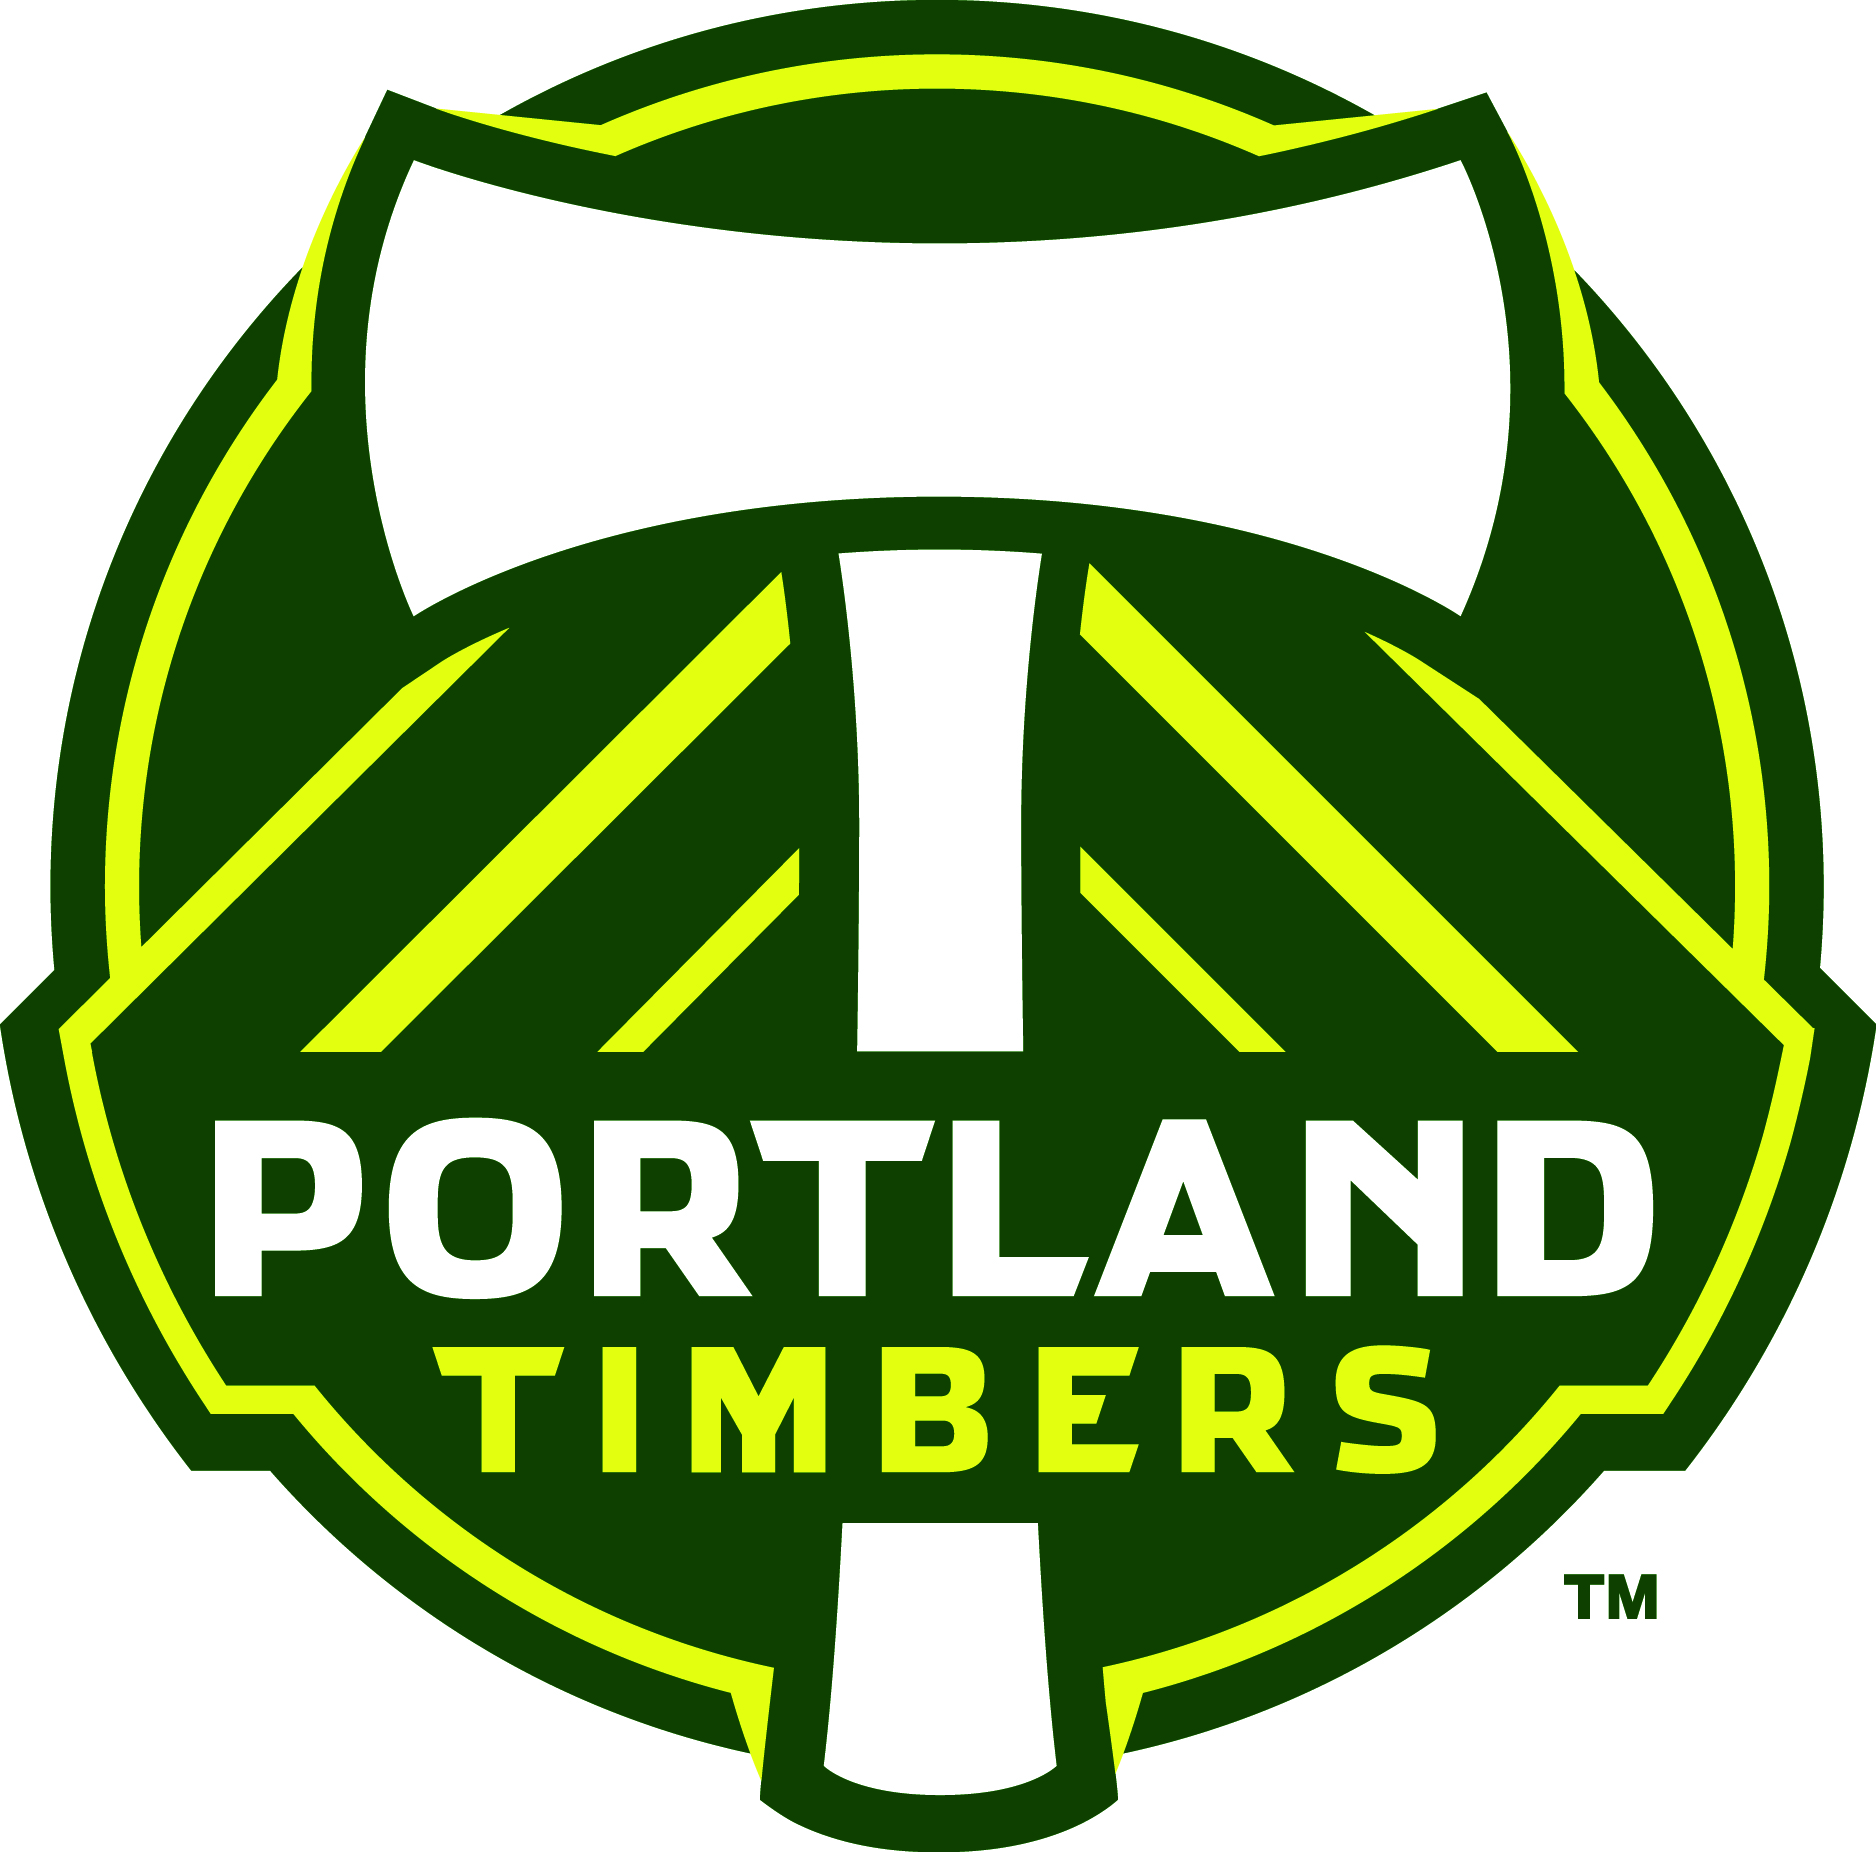 Portland Timbers ACCURATE CREST